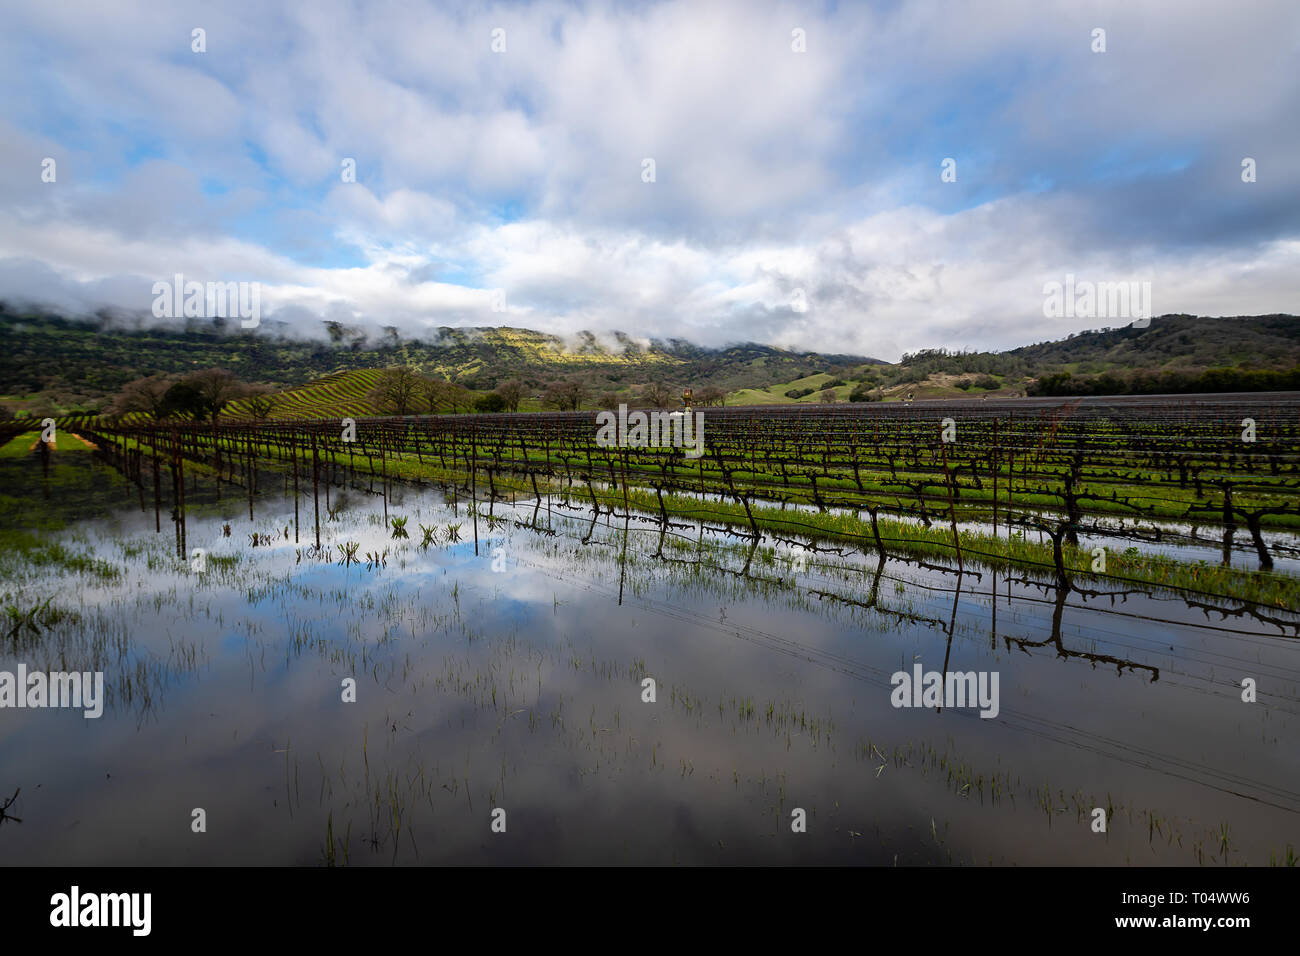 Reflections in the vineyards - Stock Image